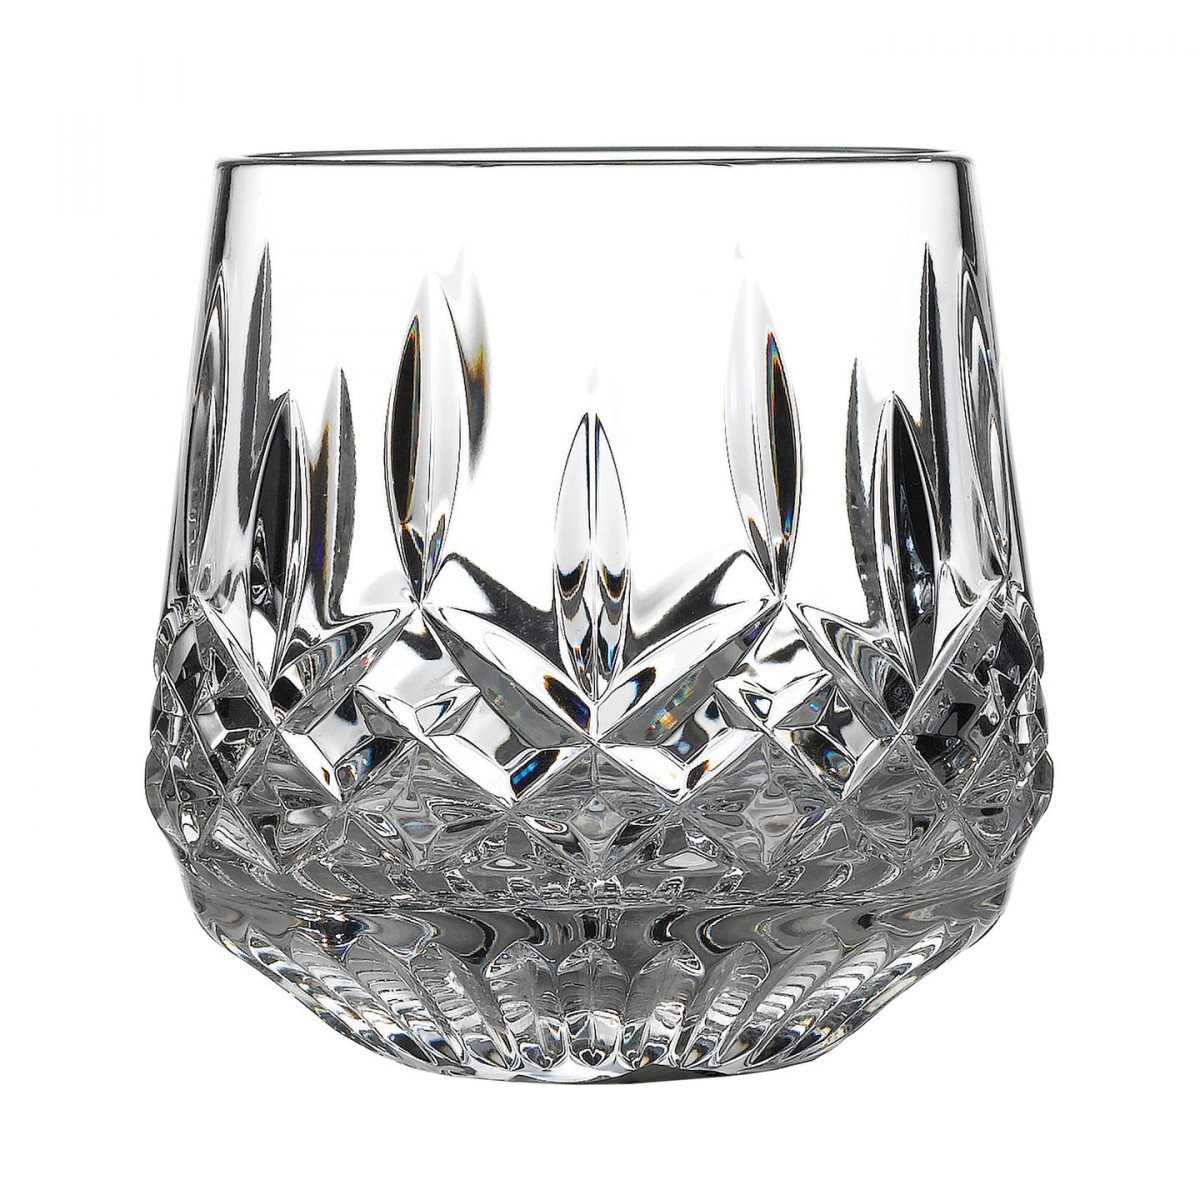 Exciting waterford lismore with lismore goblet design glass waterford lismore